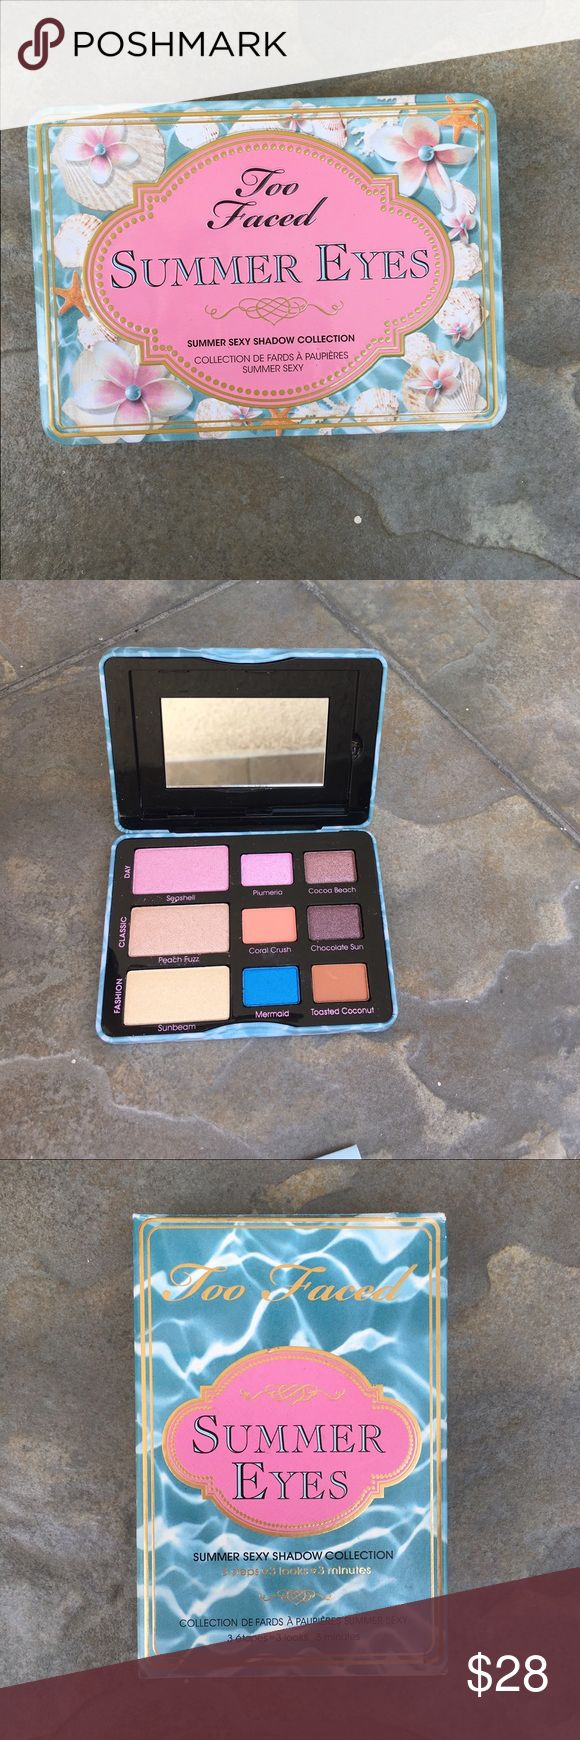 Too Faced Summer eyes palette New in the box Too Faced Makeup Eyeshadow